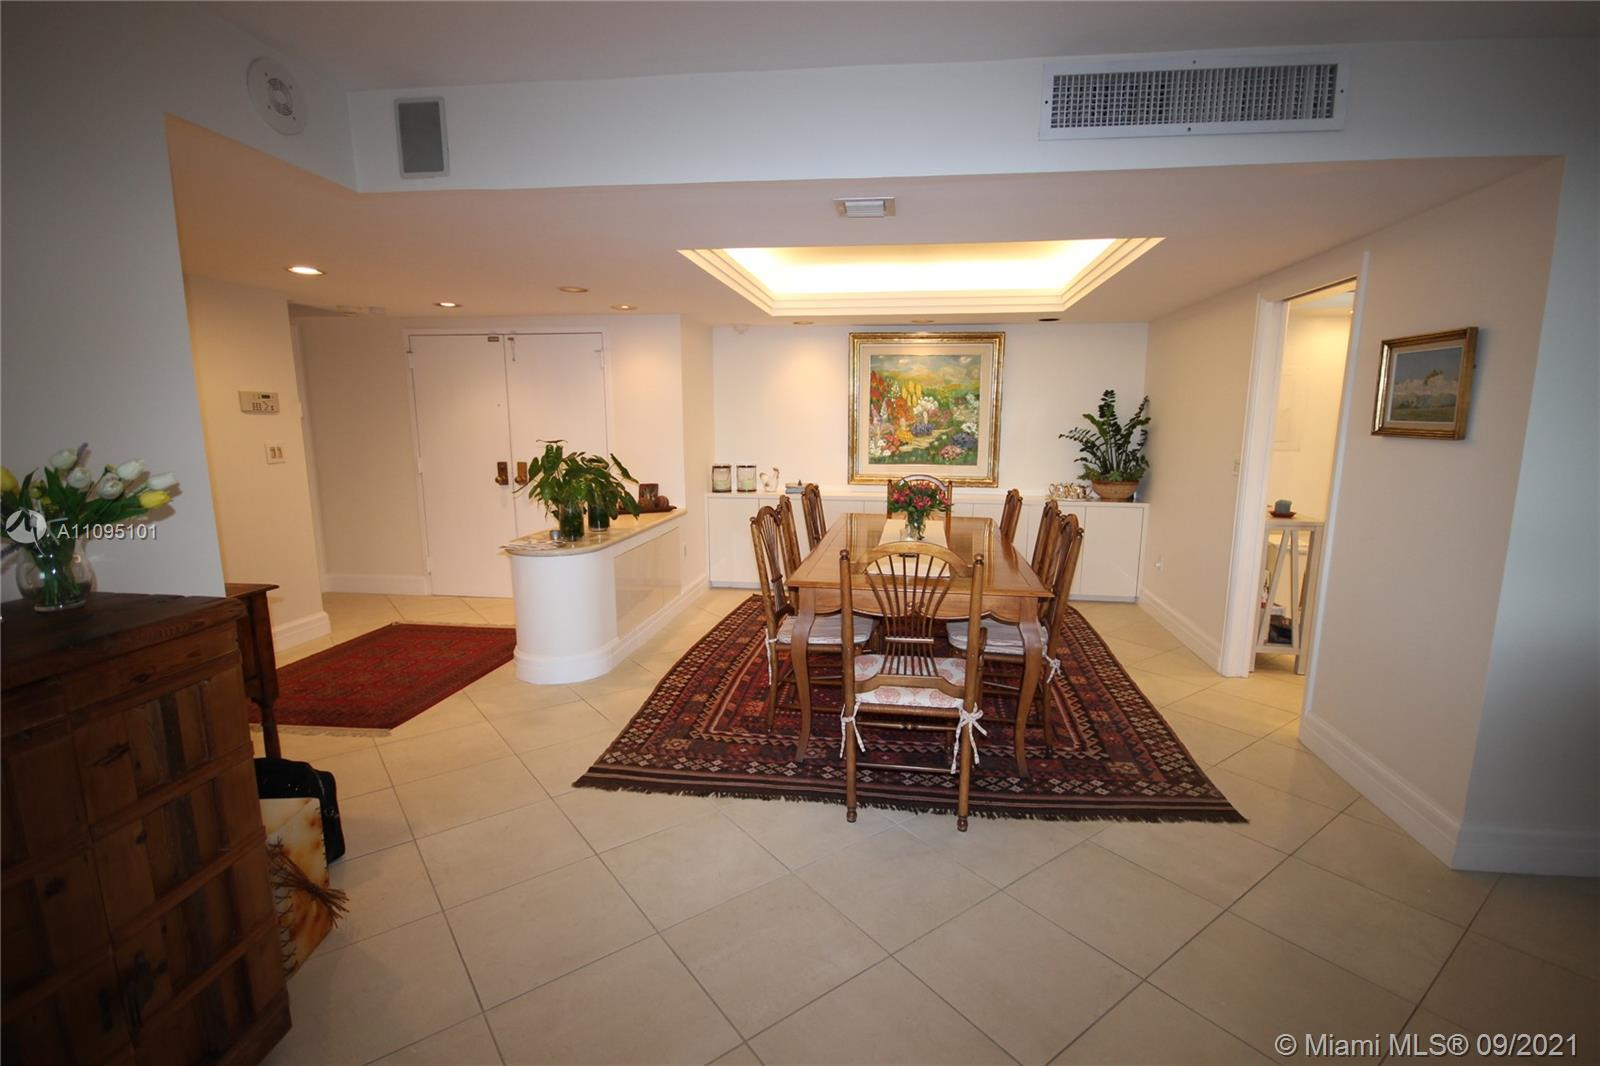 This bright and beautiful split 2 bedroom and 2 bathroom unit has an open concept with lots of natural light. Rarely on the market split plan design. Spacious 2bed/2bath unit with direct bay, ocean access, & tropical views! The master bedroom features a large walk-in closet. This Island paradise features a full marina, a malecón walkway to view the bay, a small beach with bbq area and storage for kayaks and paddle boards. Minutes to everything Coconut Grove and greater Miami have to offer. Elevator upgrades, new garden area, hallway and corridor upgrades are coming soon. Currently Rented until 1/2022